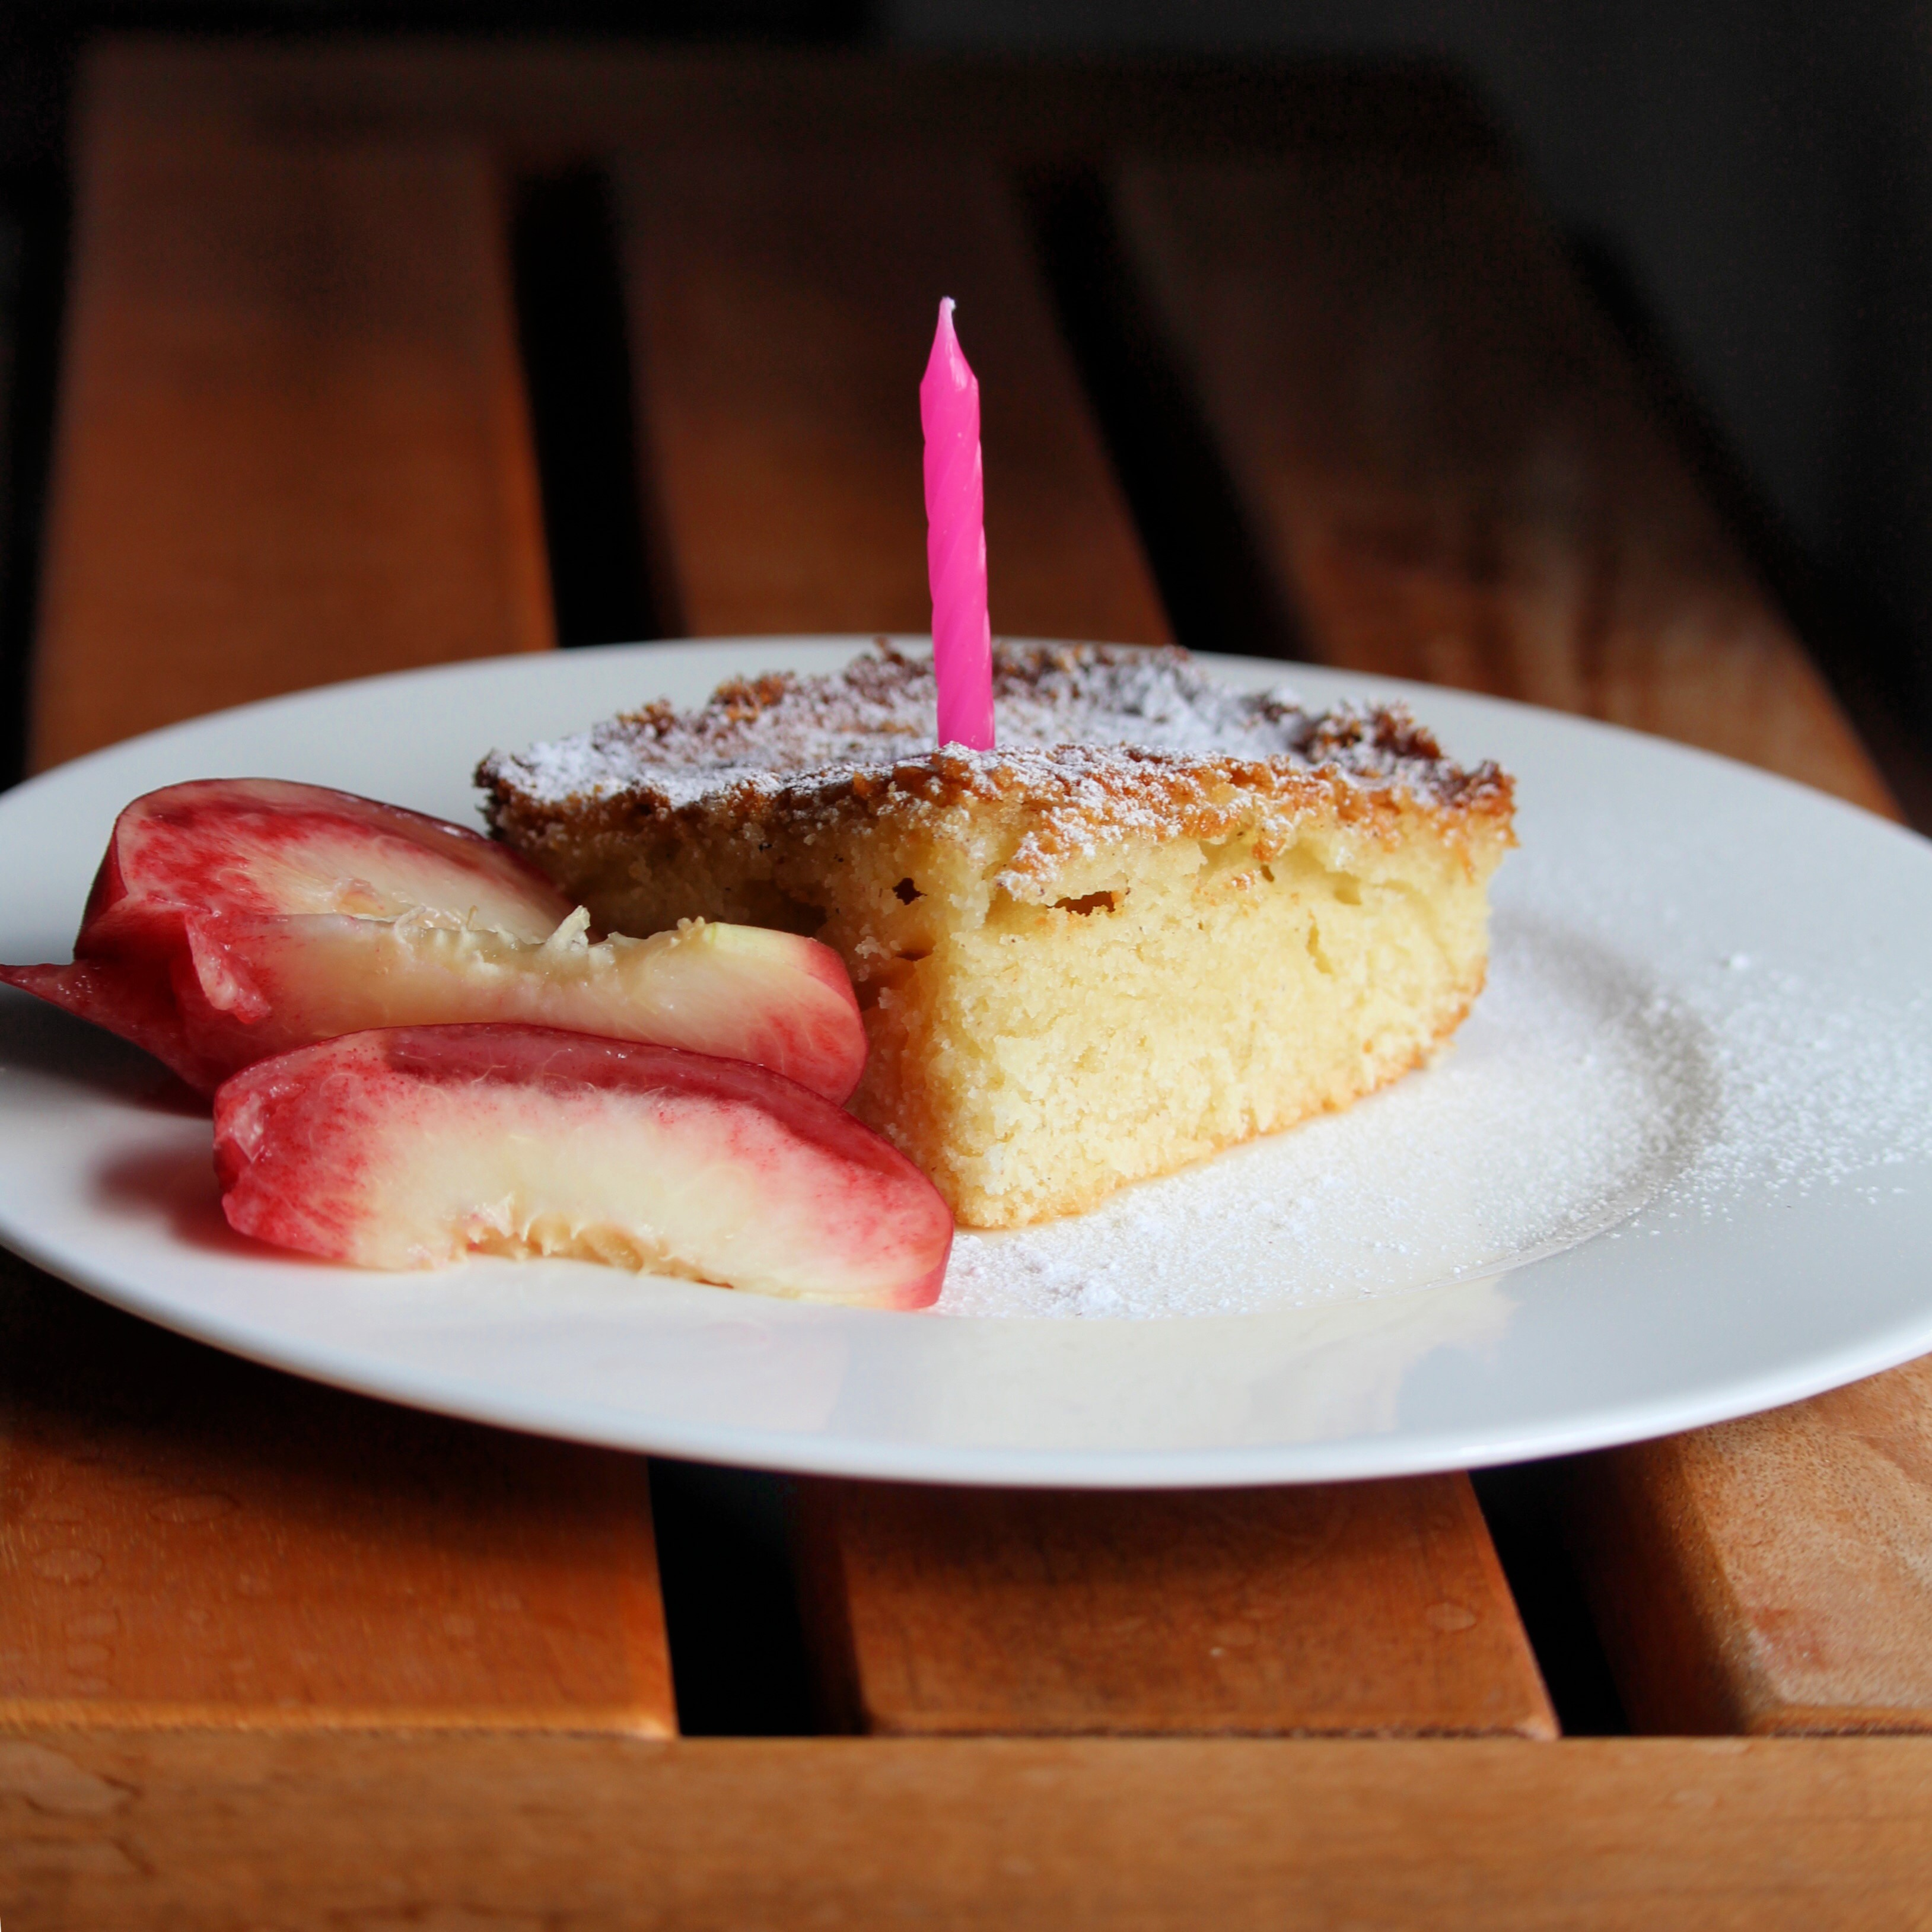 Rich, moist, and tender even baked at 6,000 or more feet, this is the ultimate vanilla-almond cake to share at high-altitudebirthday parties. Compared to traditional cakes, this one stands up to the elevation thanks to less baking powder and more eggs.